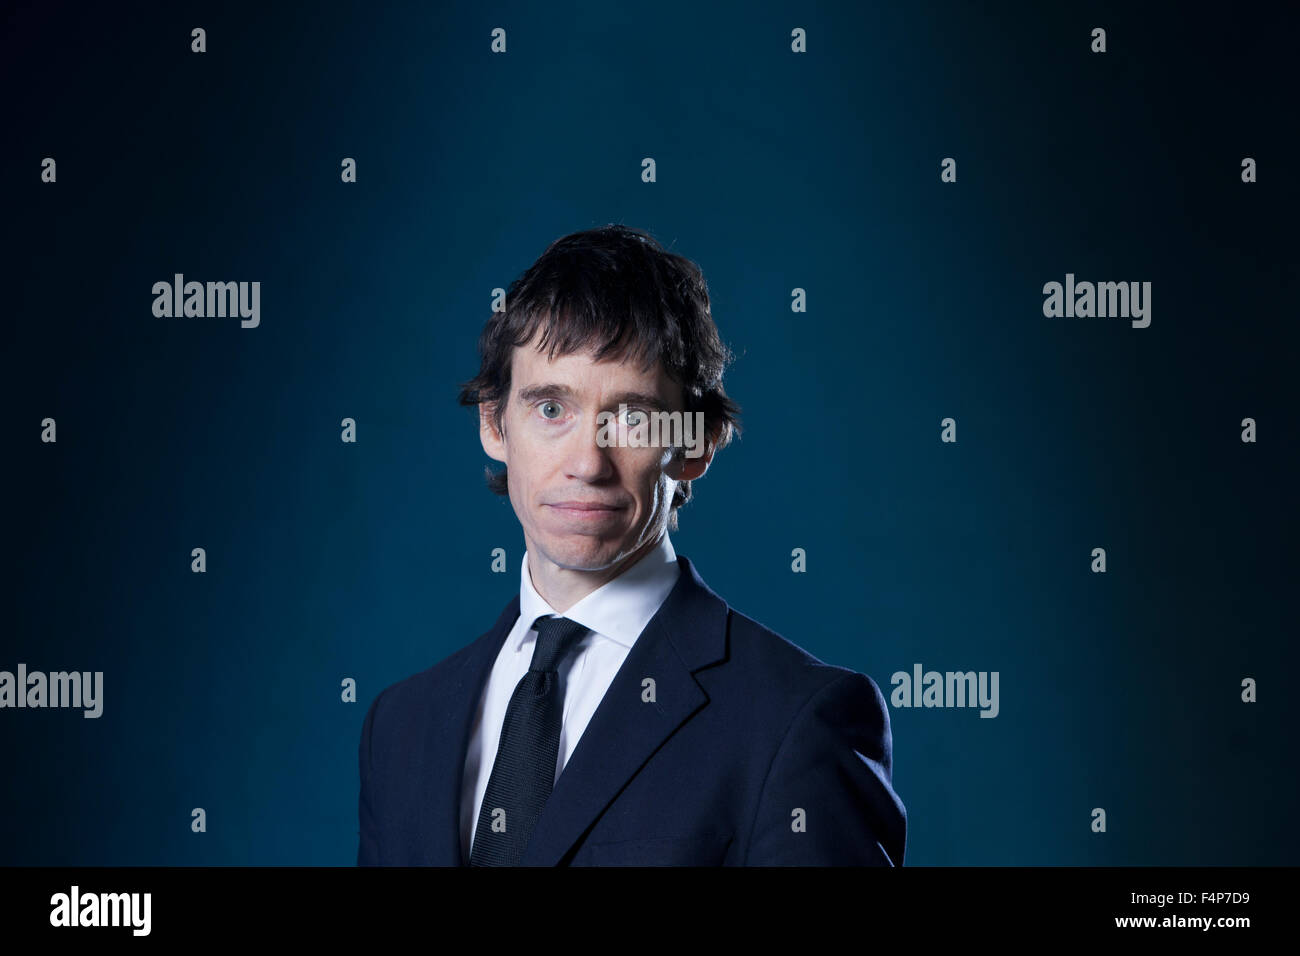 Rory Stewart, British academic, author and Conservative politician, at the Edinburgh International Book Festival - Stock Image